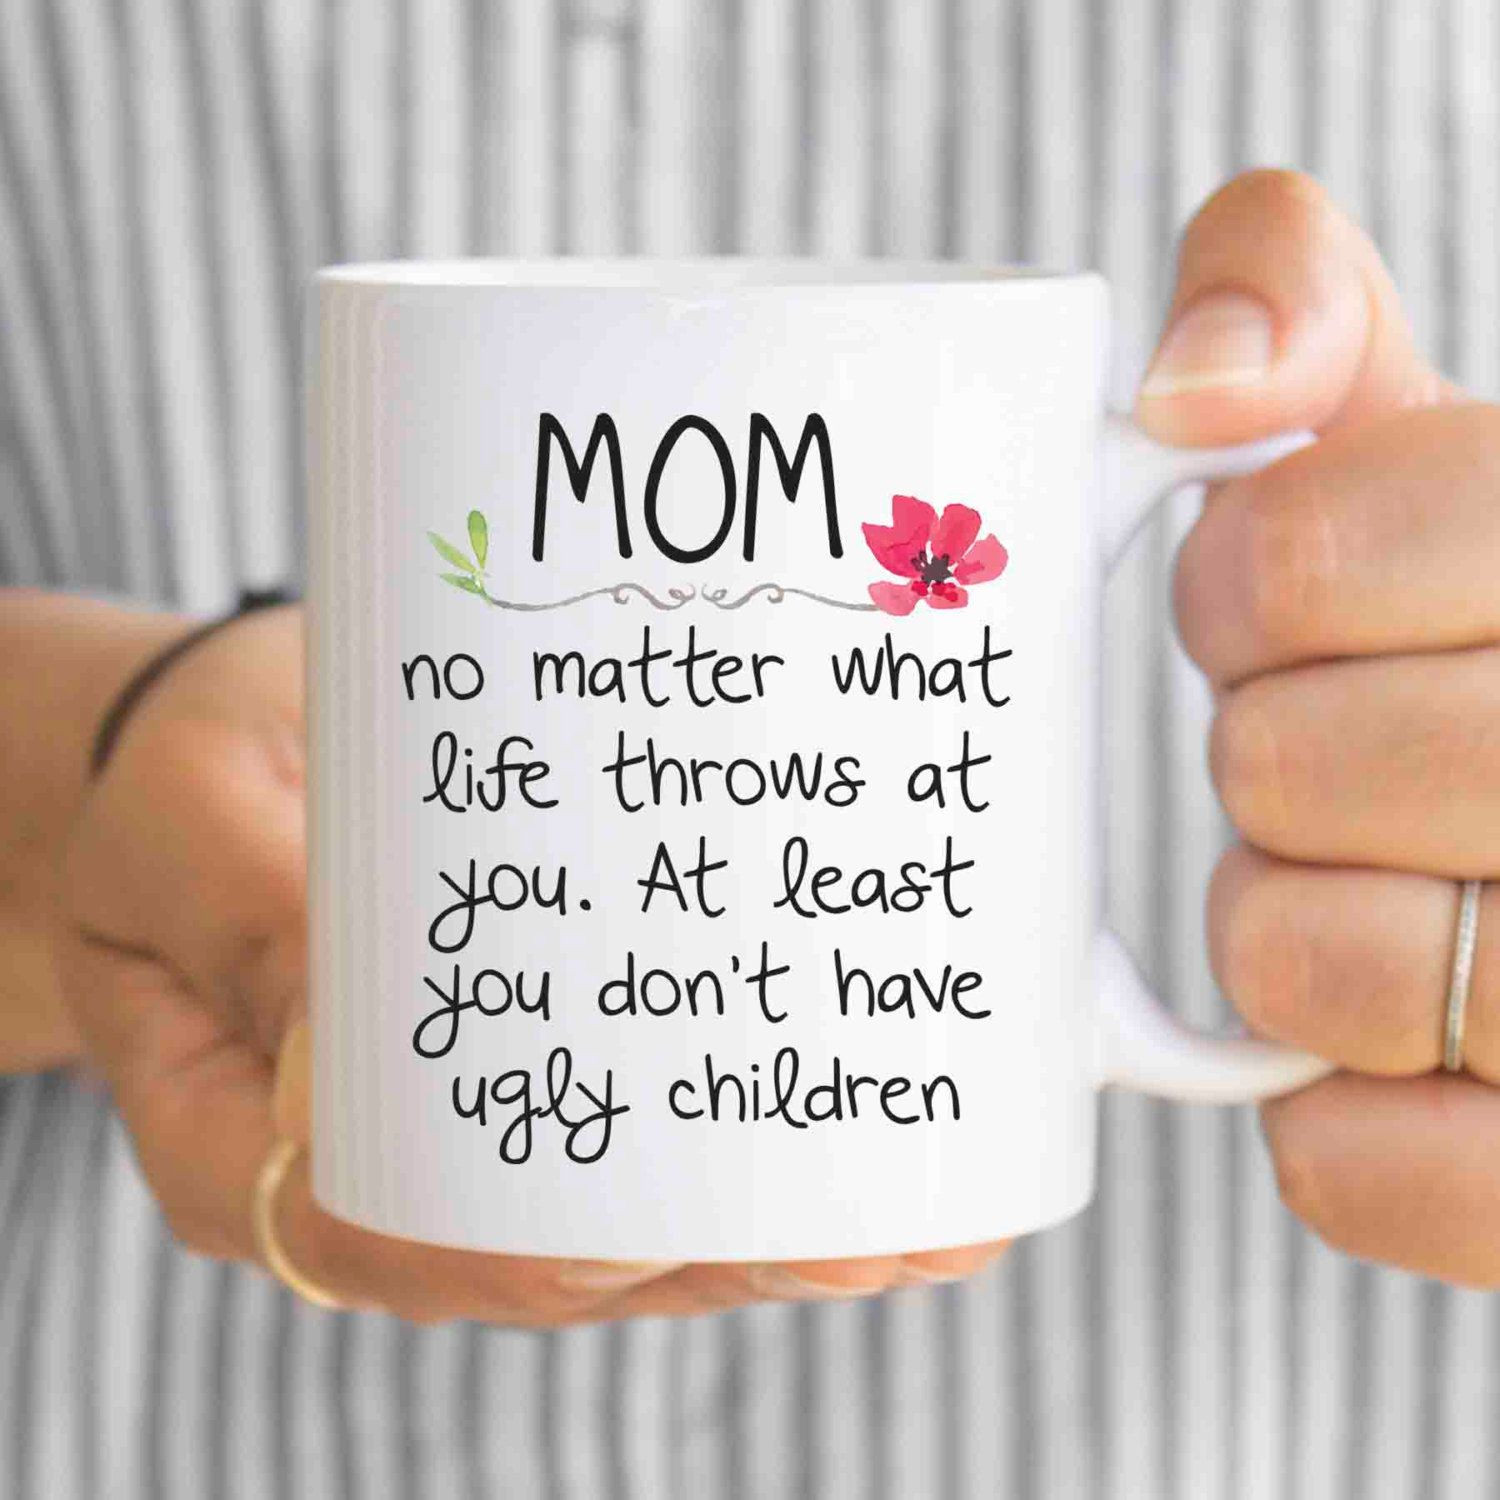 Mothers Day Unique Gift Ideas  15 Unique Mother s Day Gifts Ideas 2019 For Mom – Best